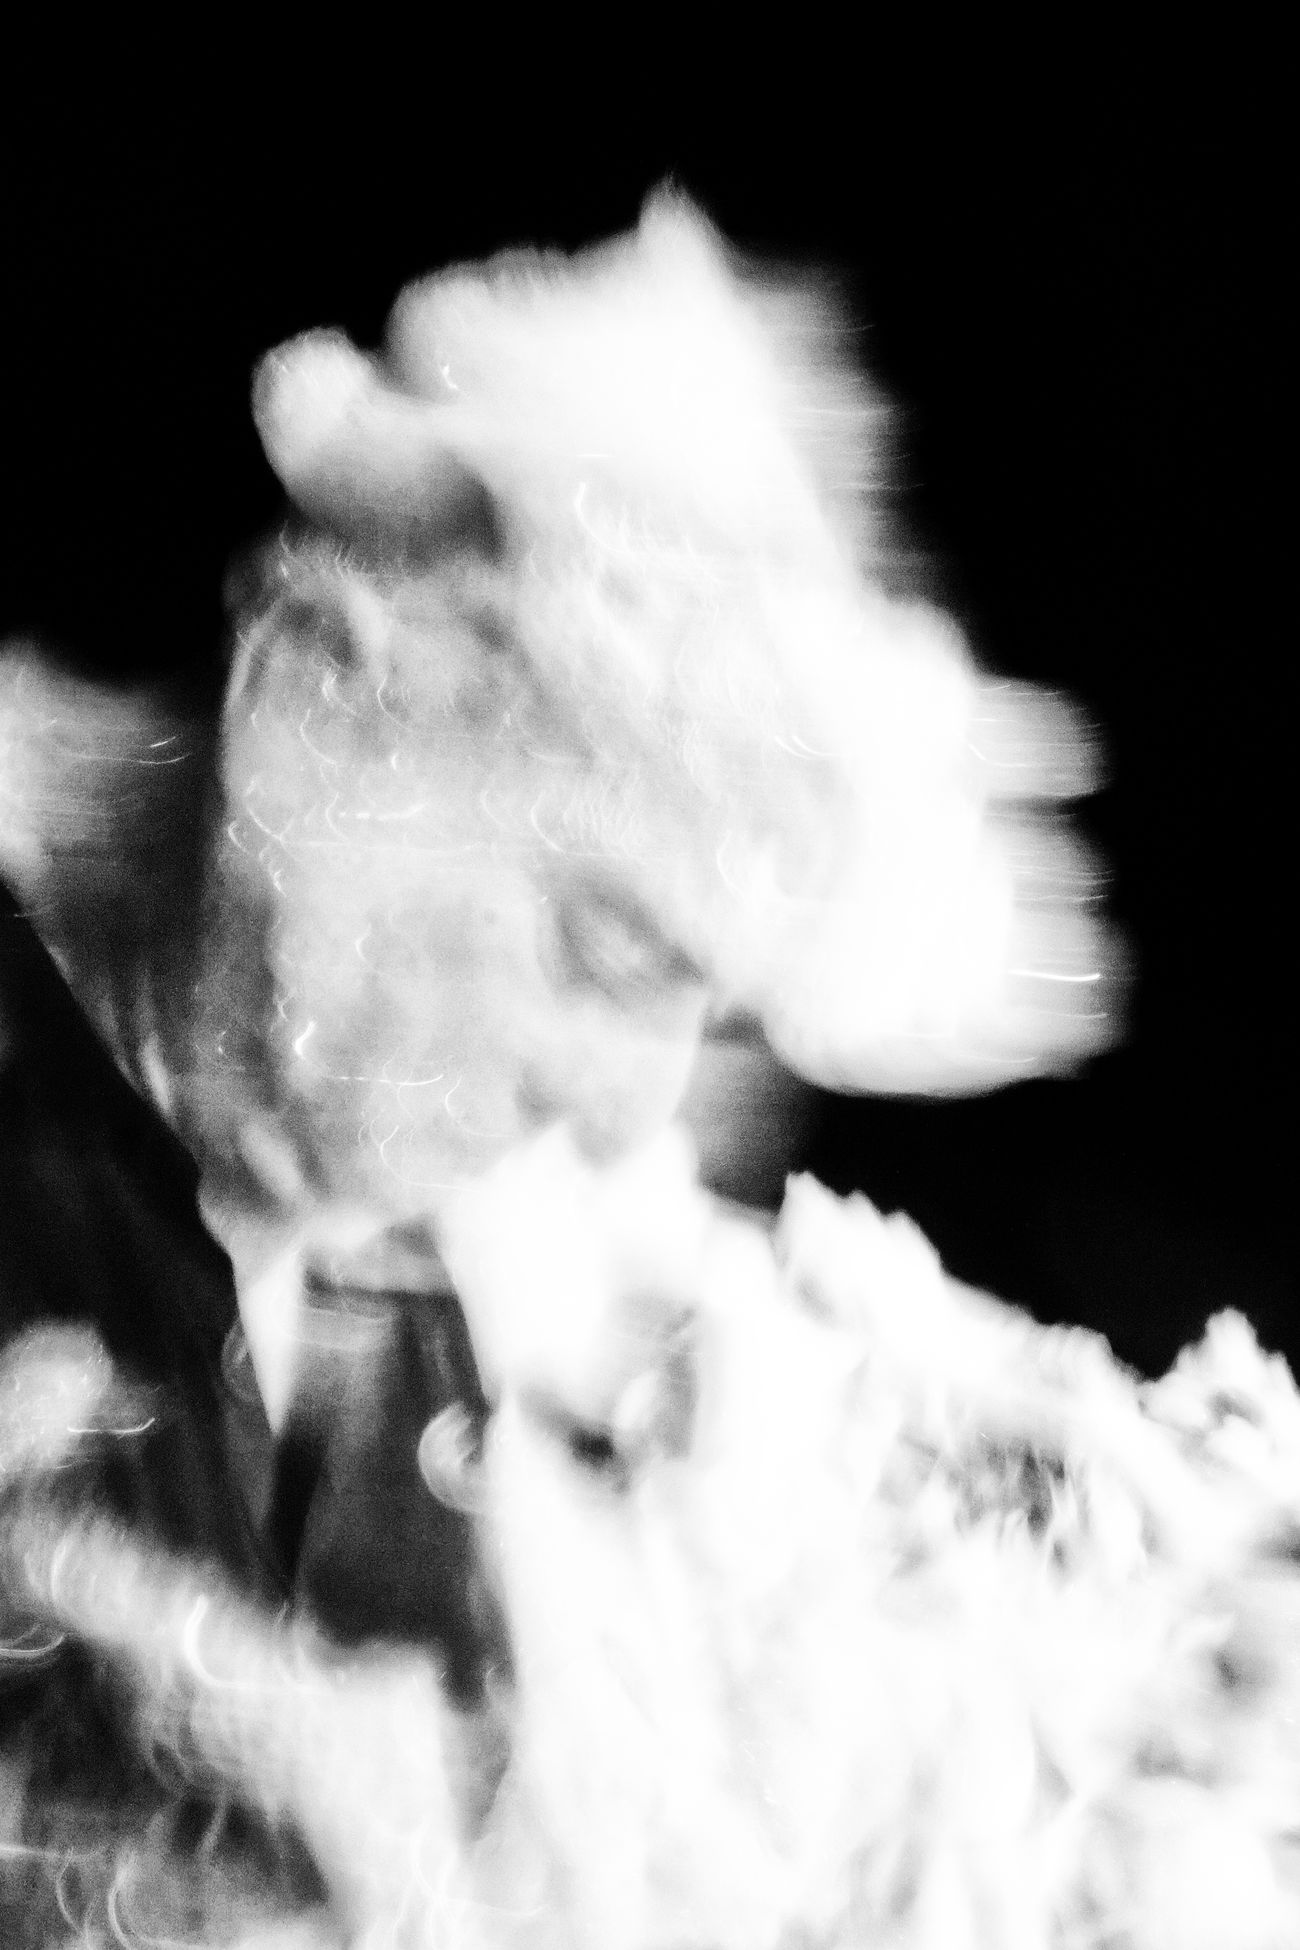 (the foam party, 24) Vicissitudini Black&white Foamparty Monochrome_life